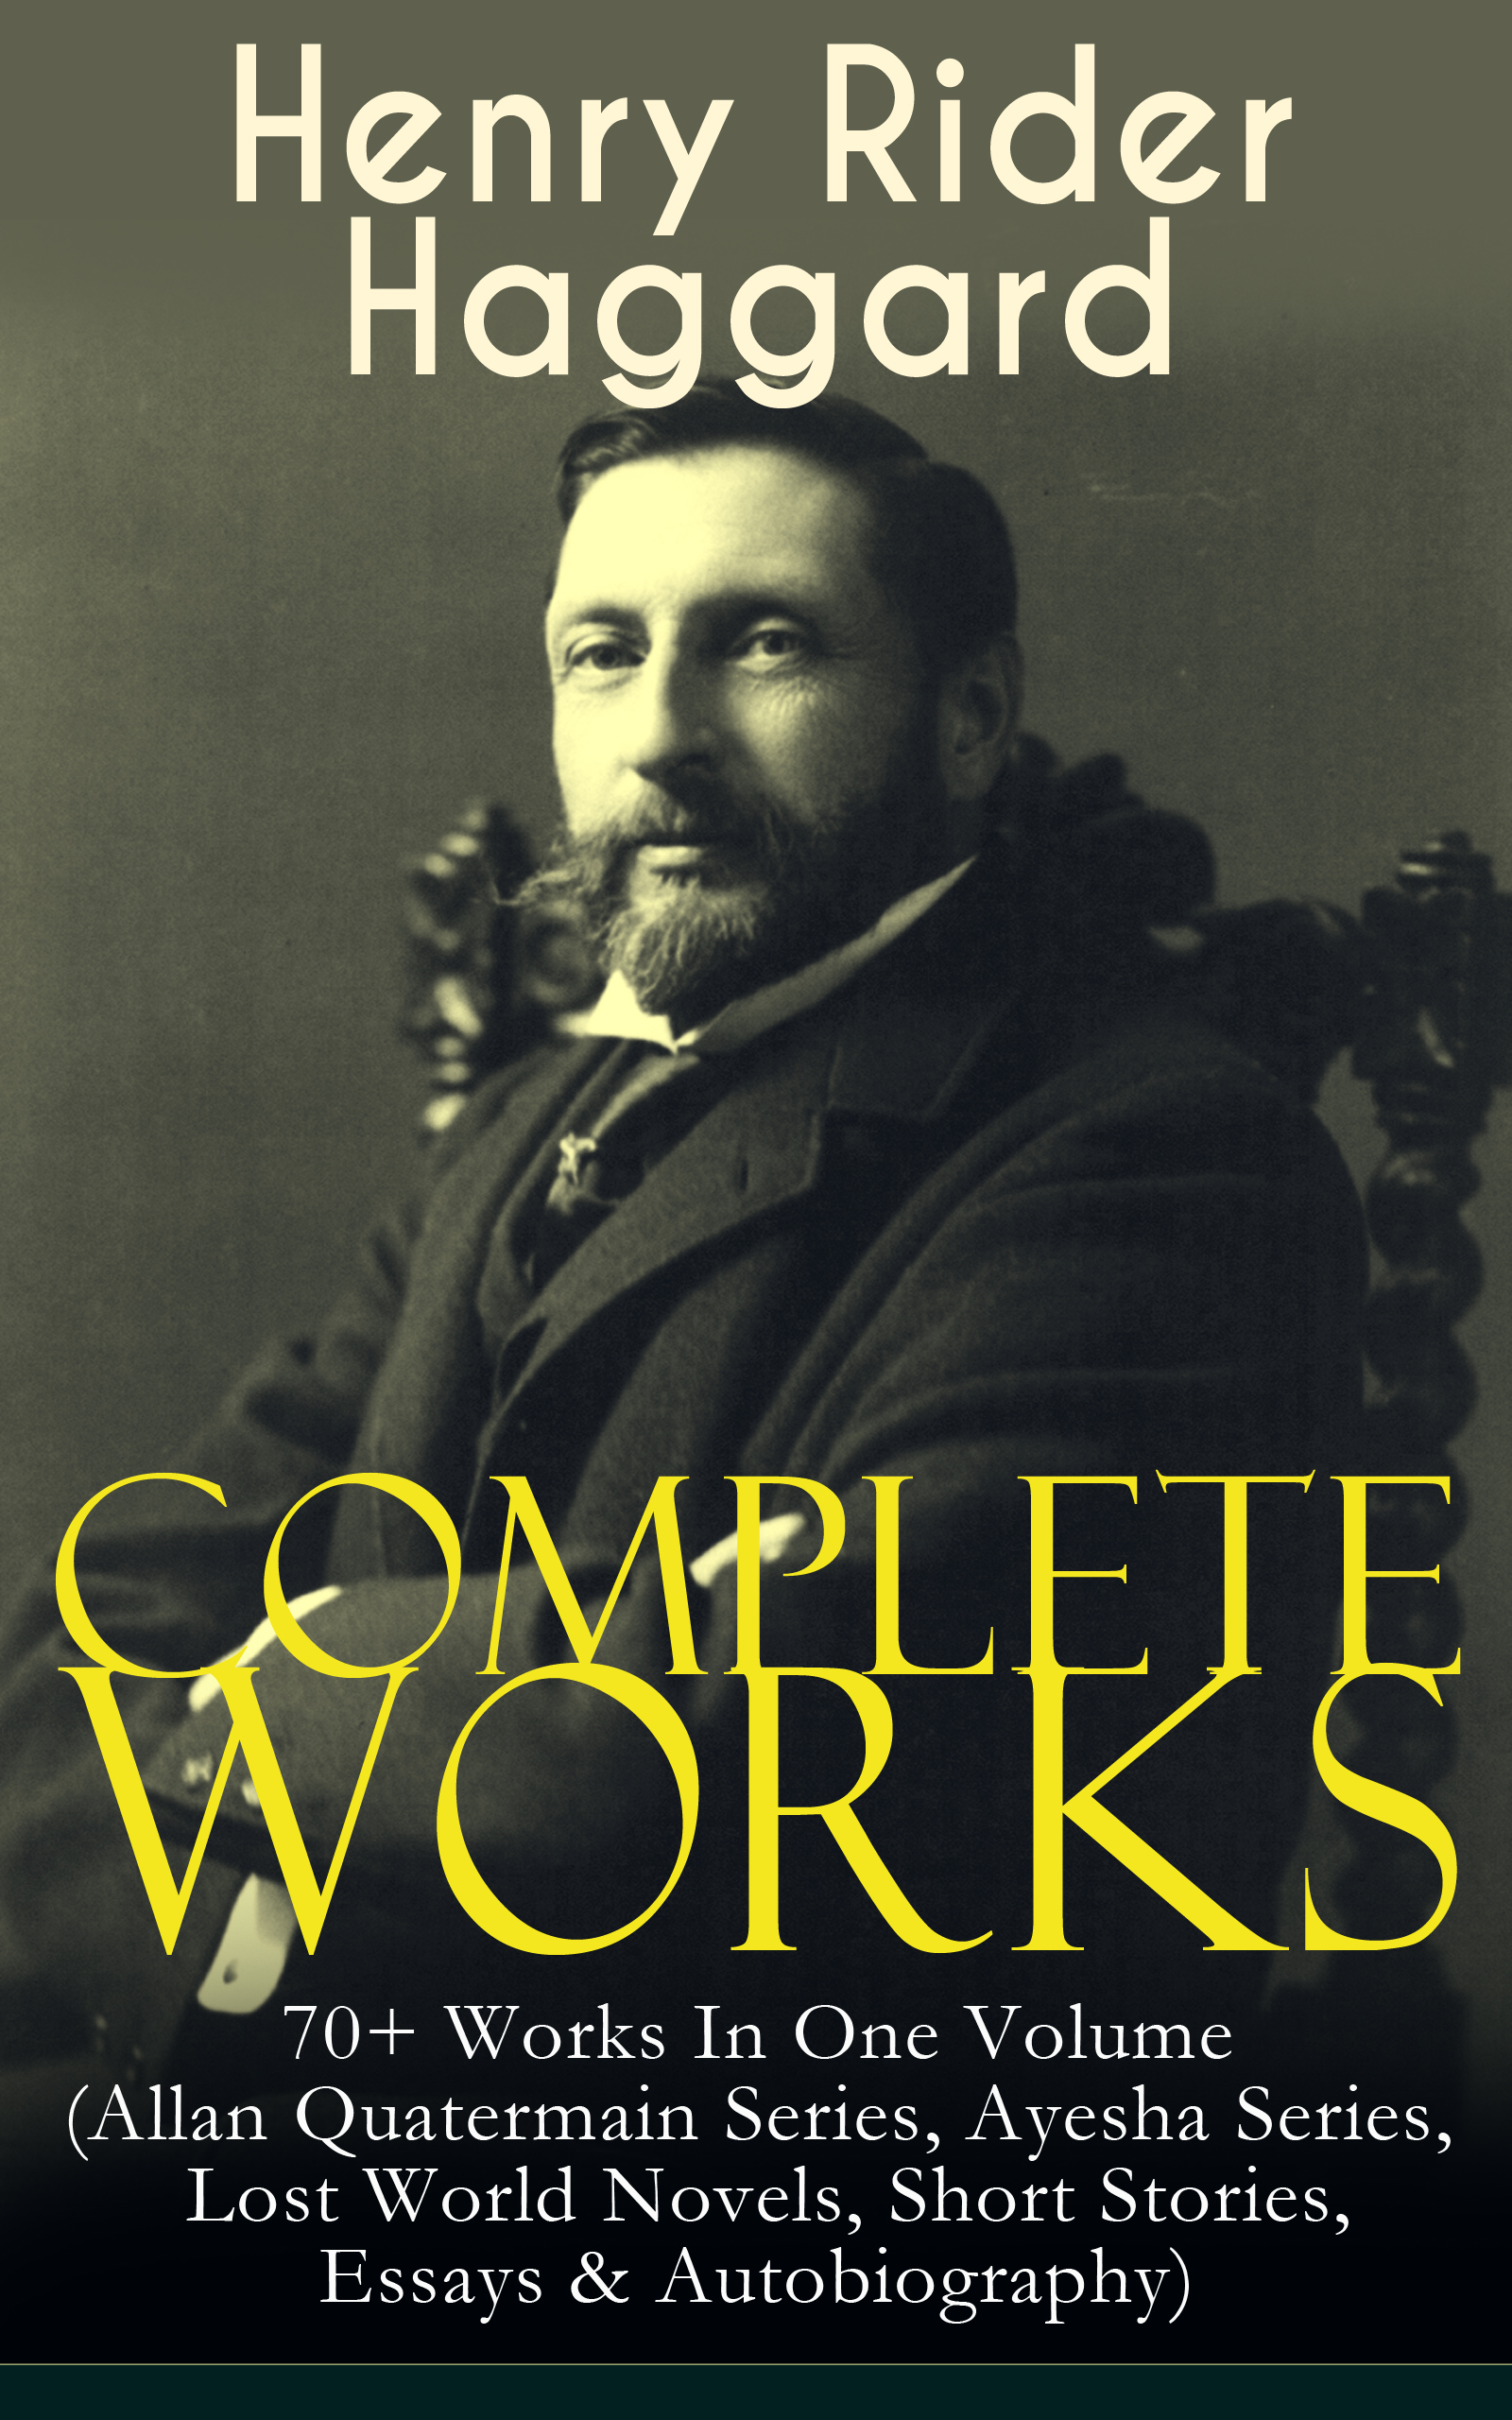 Henry Rider Haggard Complete Works of Henry Rider Haggard: 70+ Works In One Volume (Allan Quatermain Series, Ayesha Series, Lost World Novels, Short Stories, Essays & Autobiography)